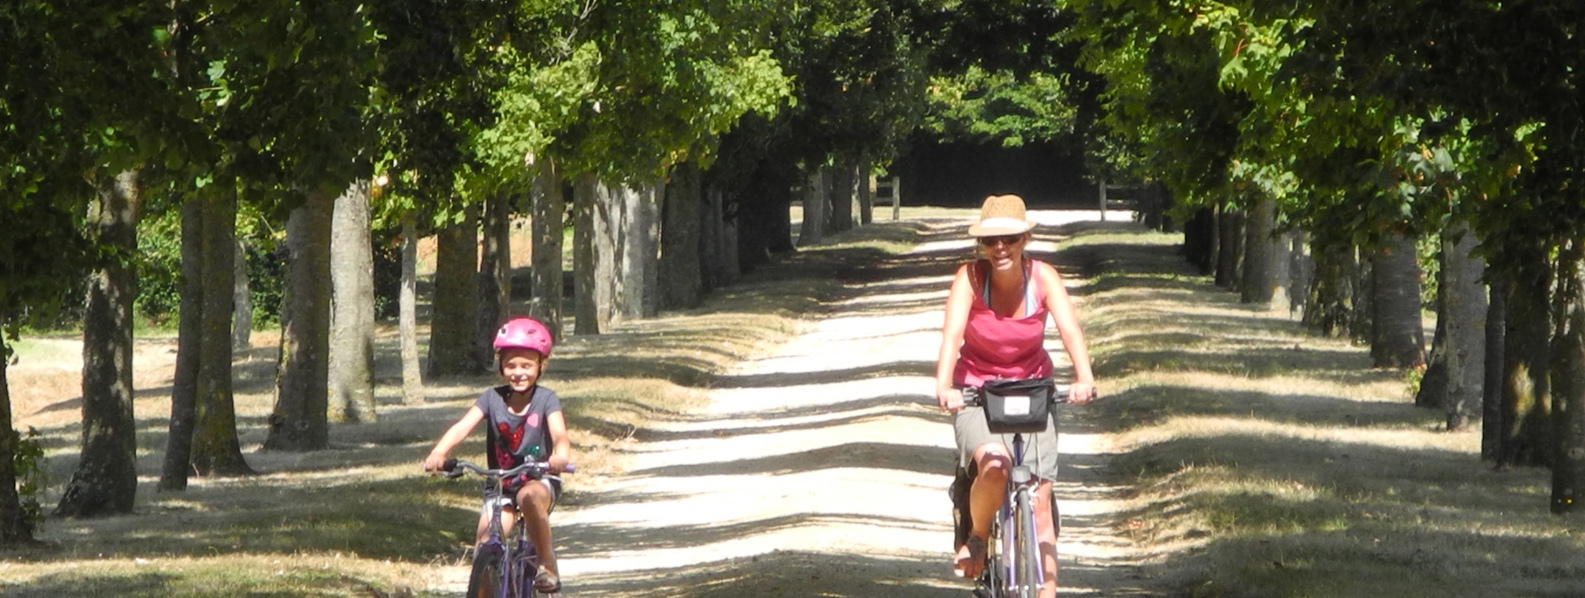 Mayenne Family Cycling Holiday